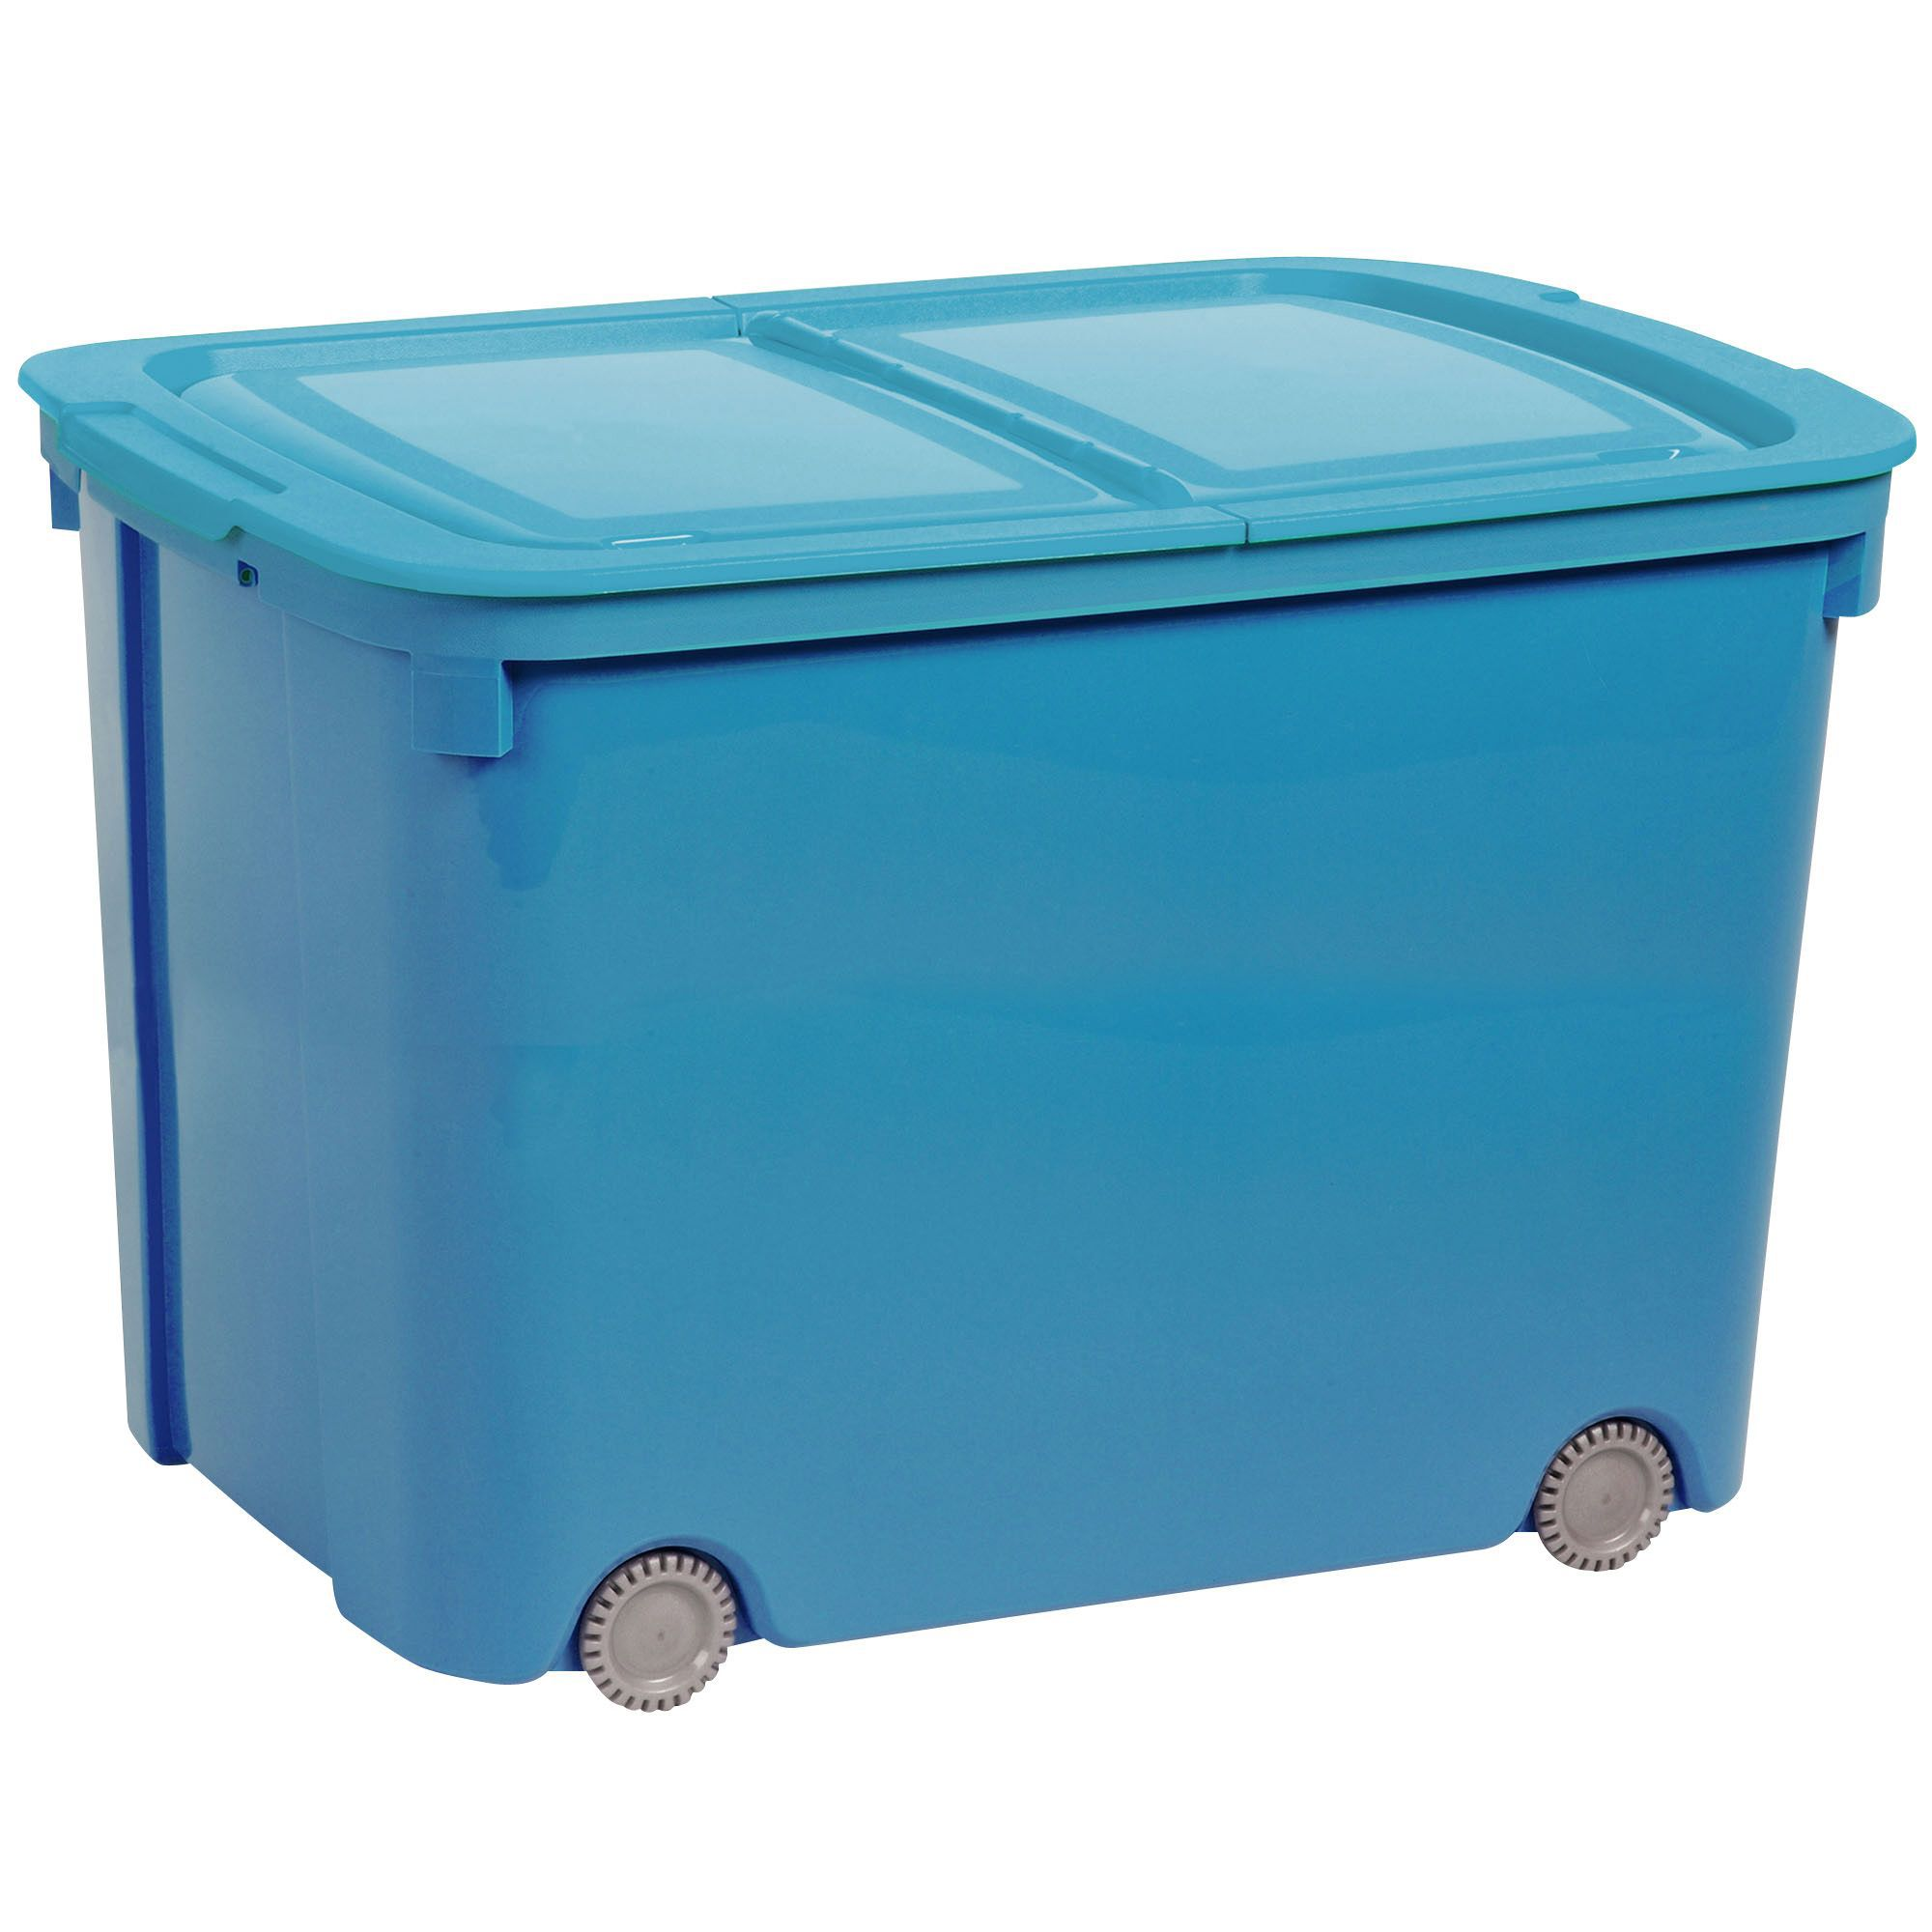 curver bee tidy blue 70l plastic storage box on wheels departments diy at b q. Black Bedroom Furniture Sets. Home Design Ideas